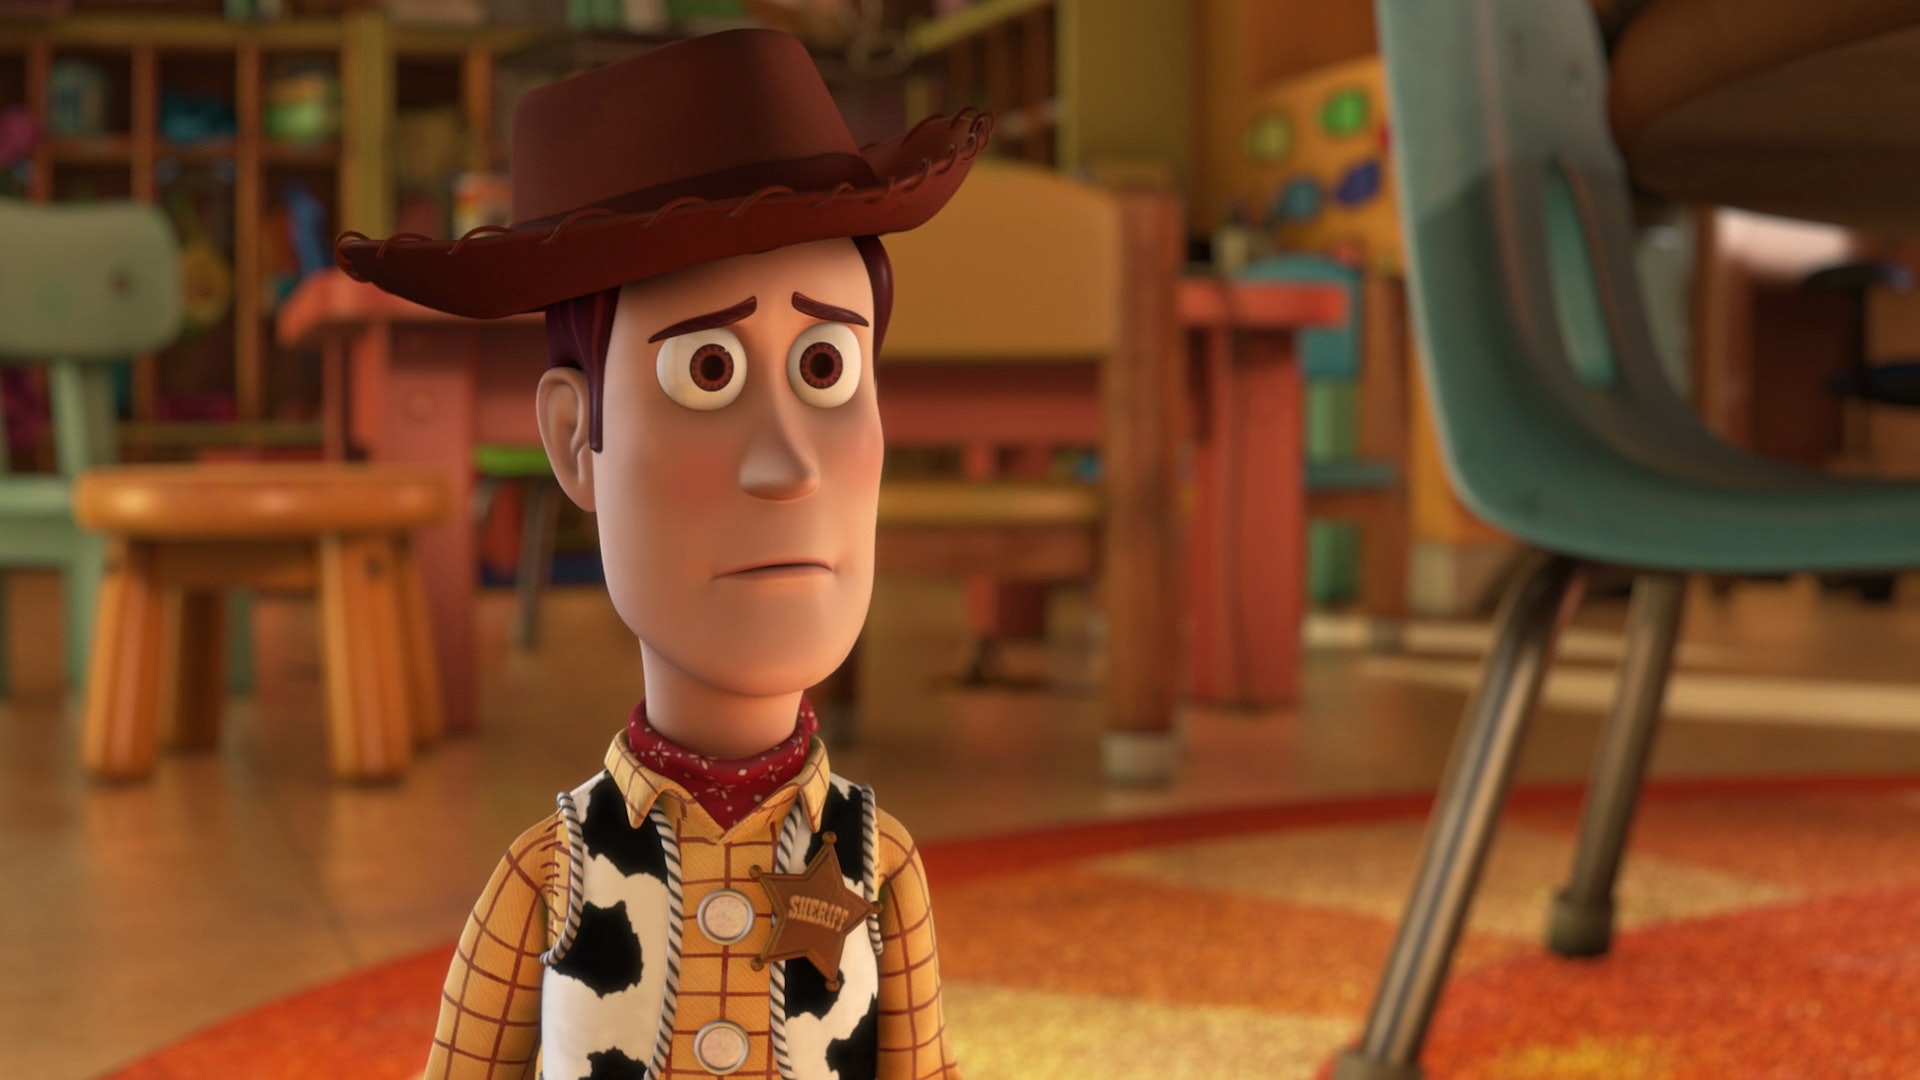 Tom Hanks Toy Story 4 Wrap Photo Hints The Movie Could Be